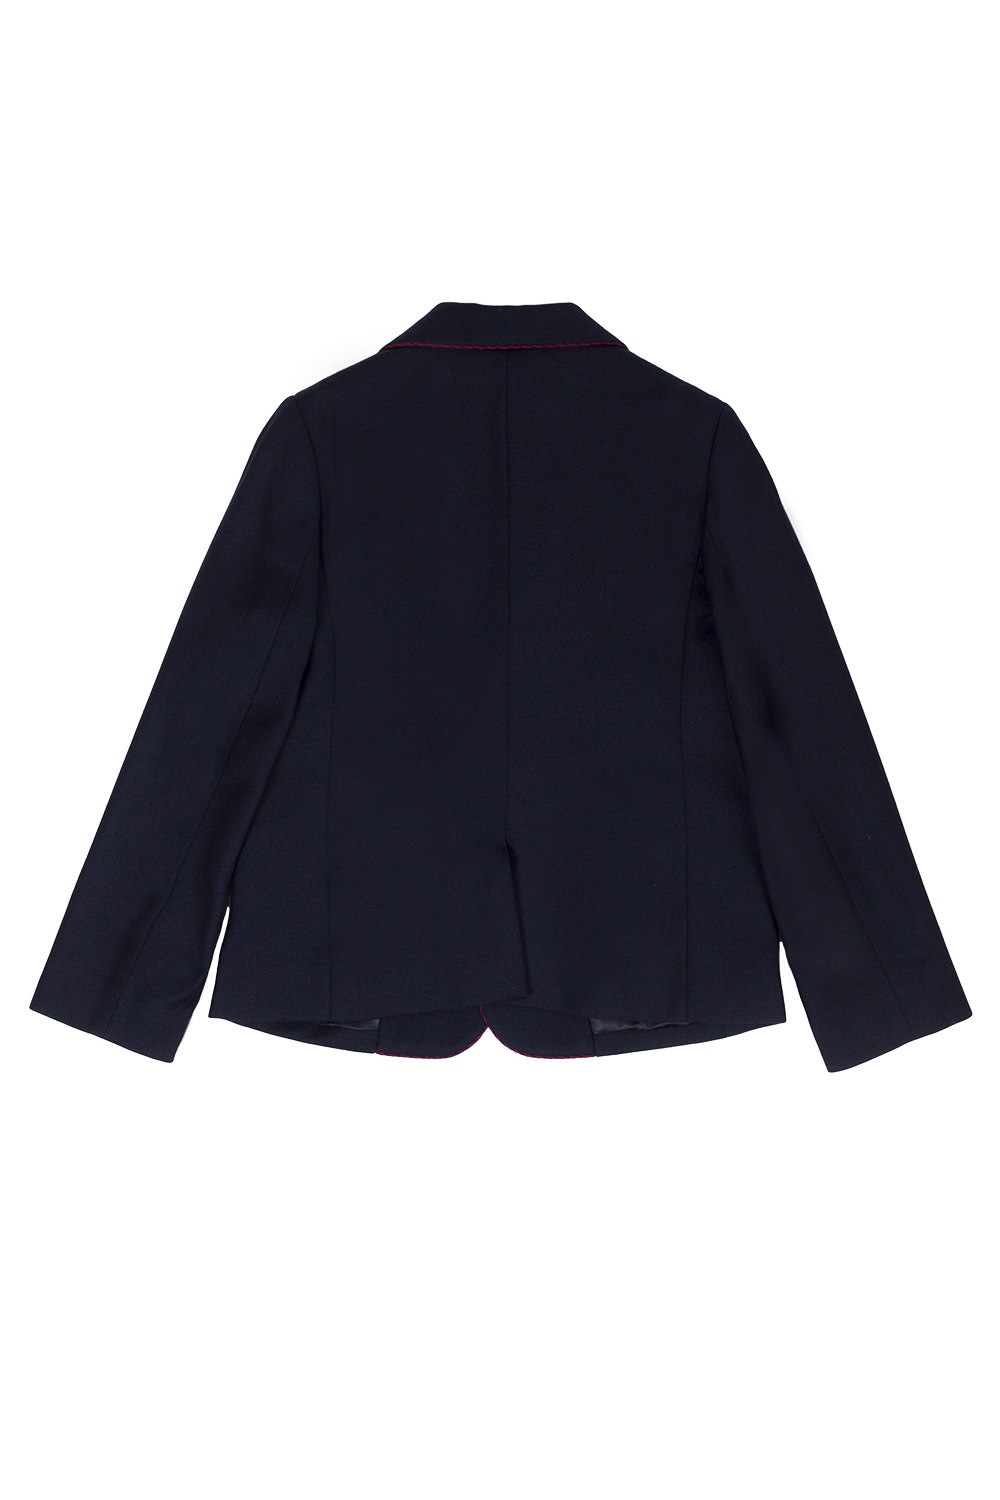 Gucci Kids Patched blazer